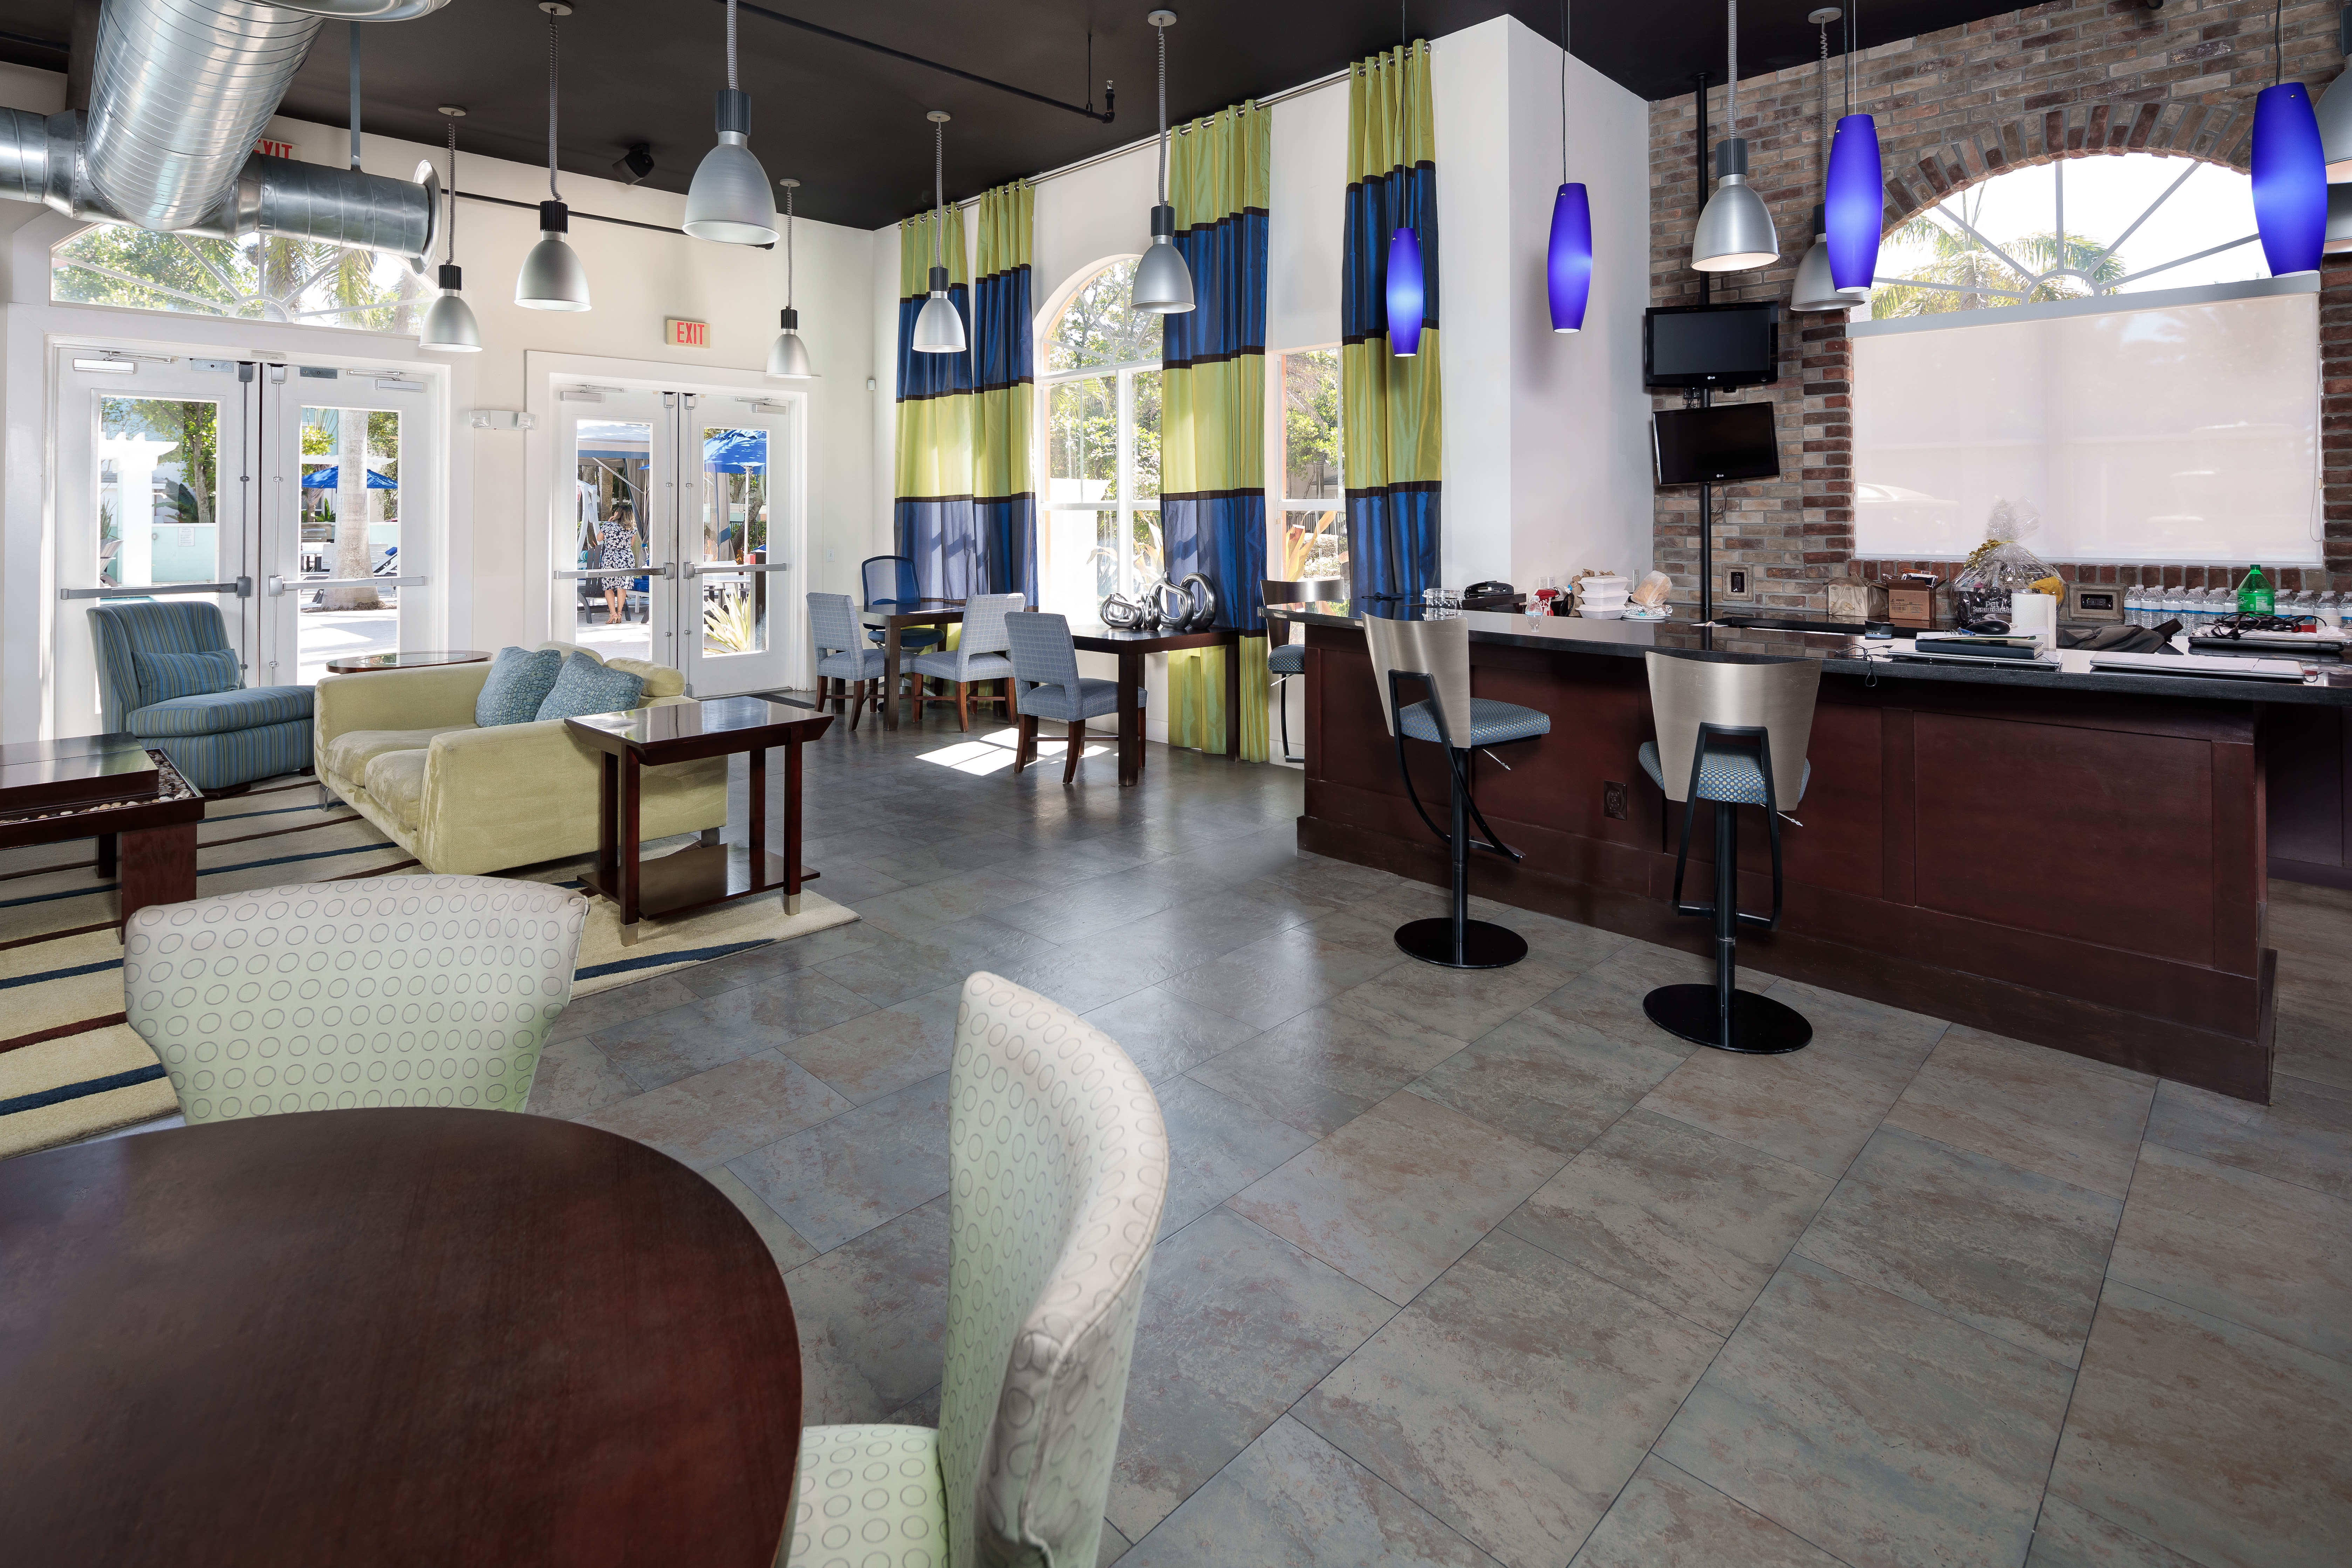 Clubhouse area where residents can relax and hang out in at The Pearl in Ft Lauderdale, Florida